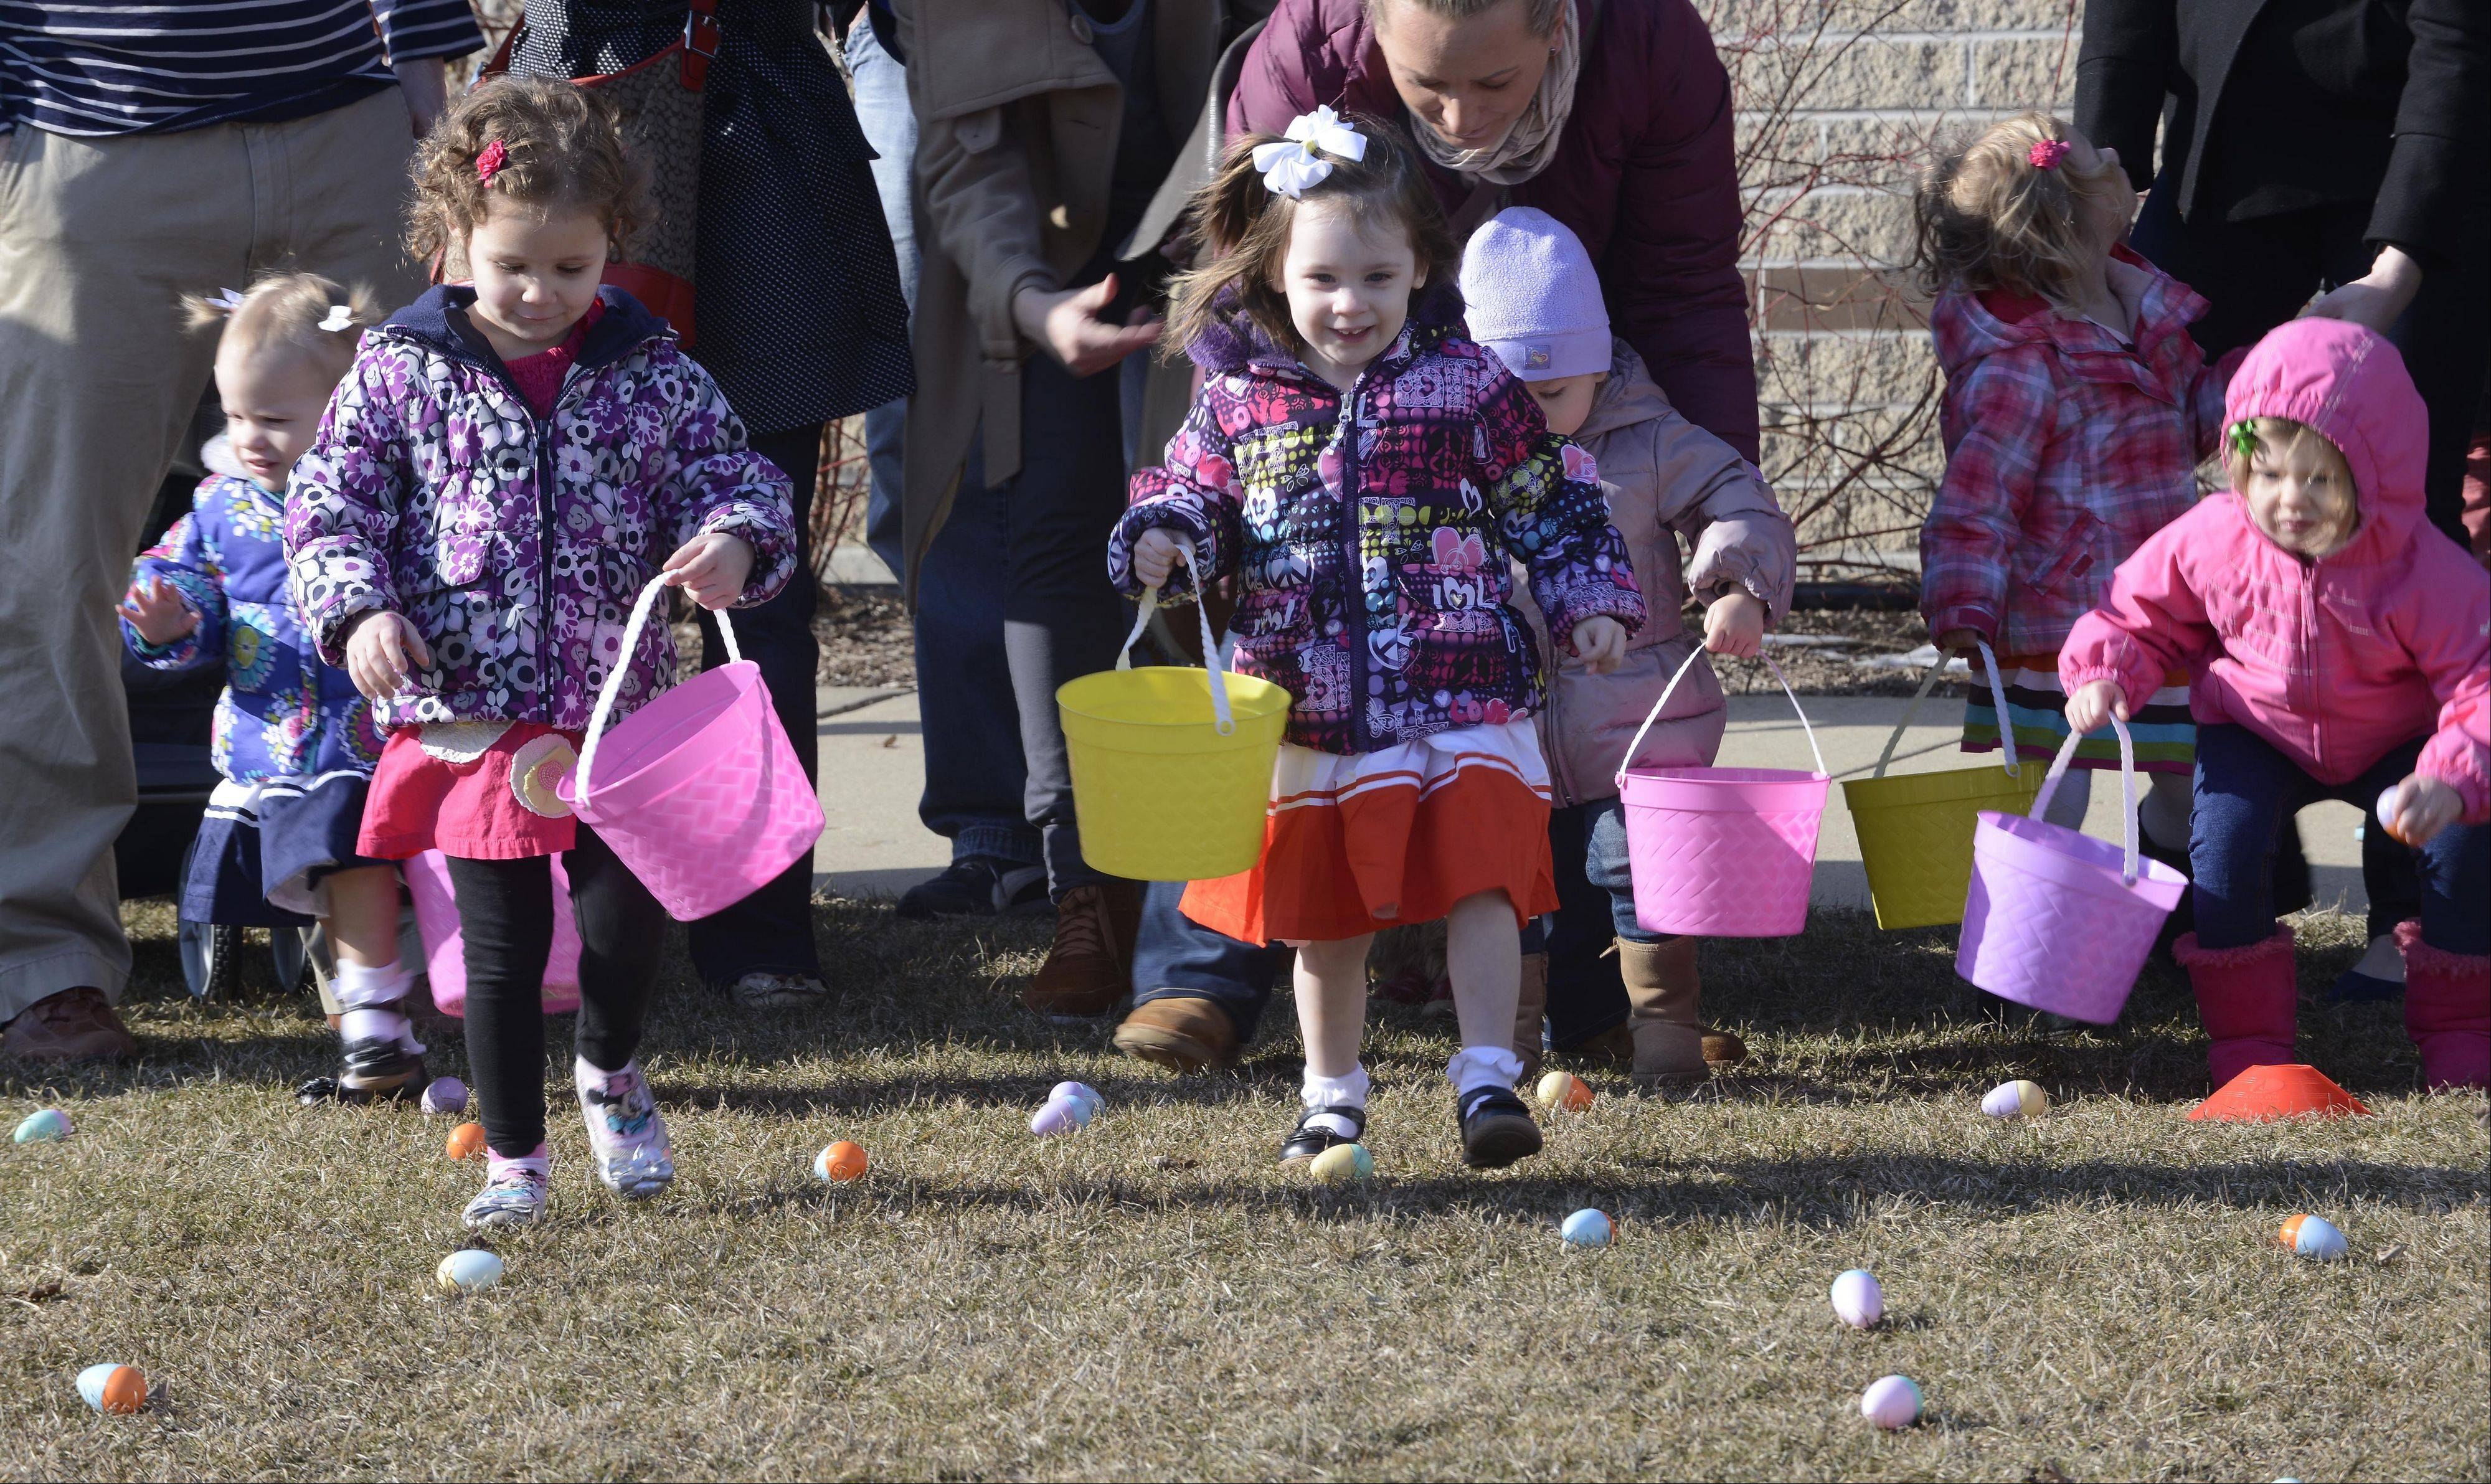 Eleanor Heintz, left, and Campbell Fenton, middle, both age 3 and of Vernon Hills, run for Easter Eggs during the Hoppin' Holiday Hunt at the Vernon Hills Park District's Sullivan Community Center.